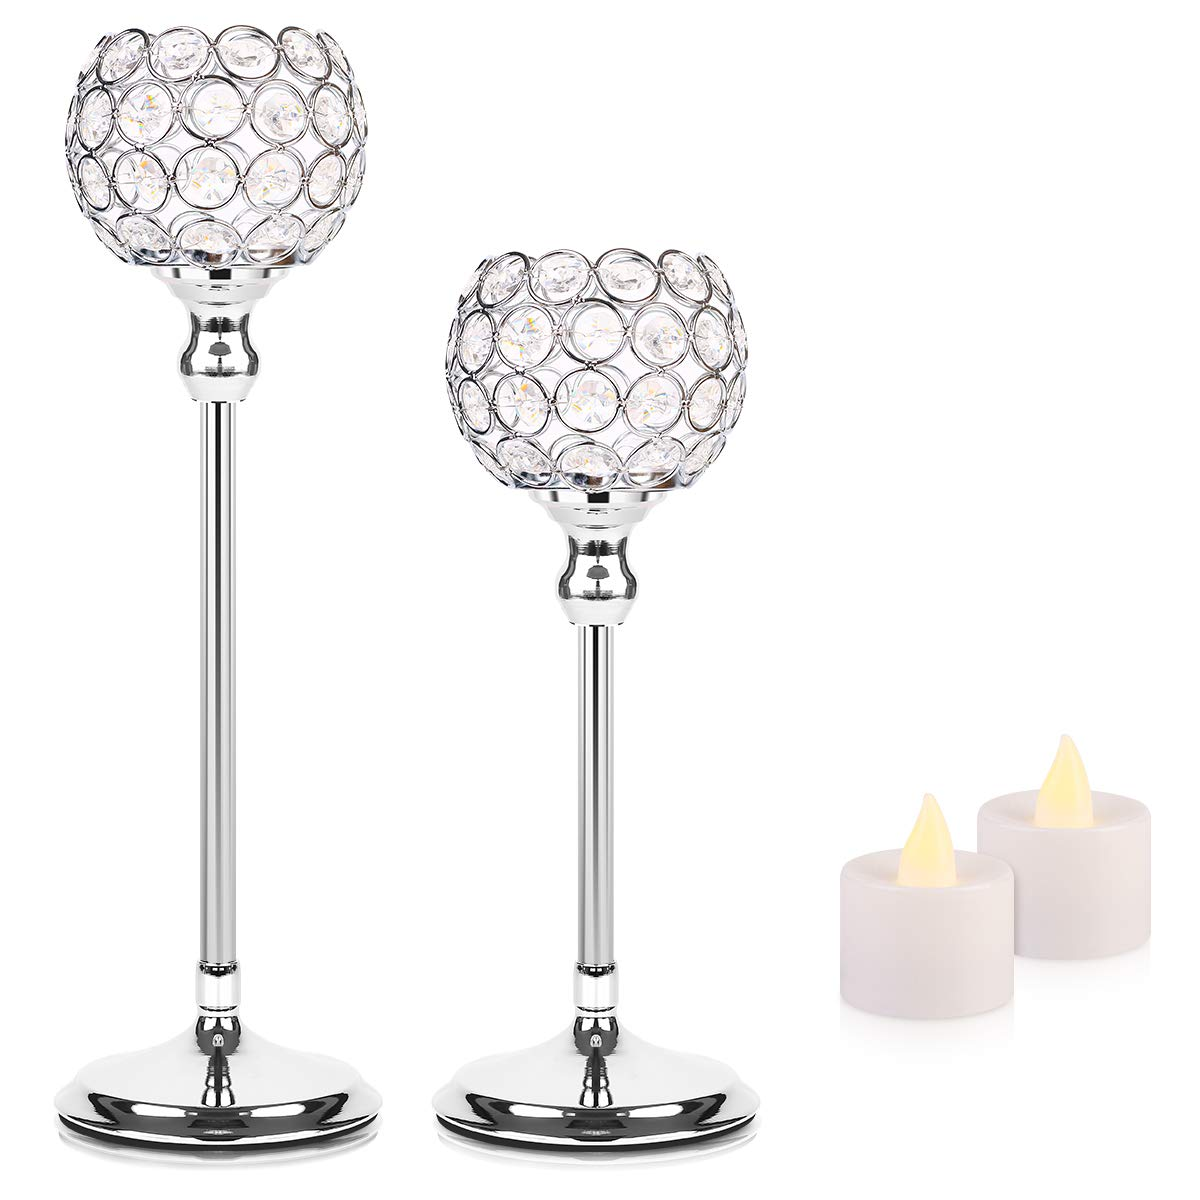 Manvi Crystal Candle Holders Centerpieces, Silver Candlesticks Holders Set of 2 for Wedding Valentines Day Table Decorations,Thanksgiving Housewarming Gifts